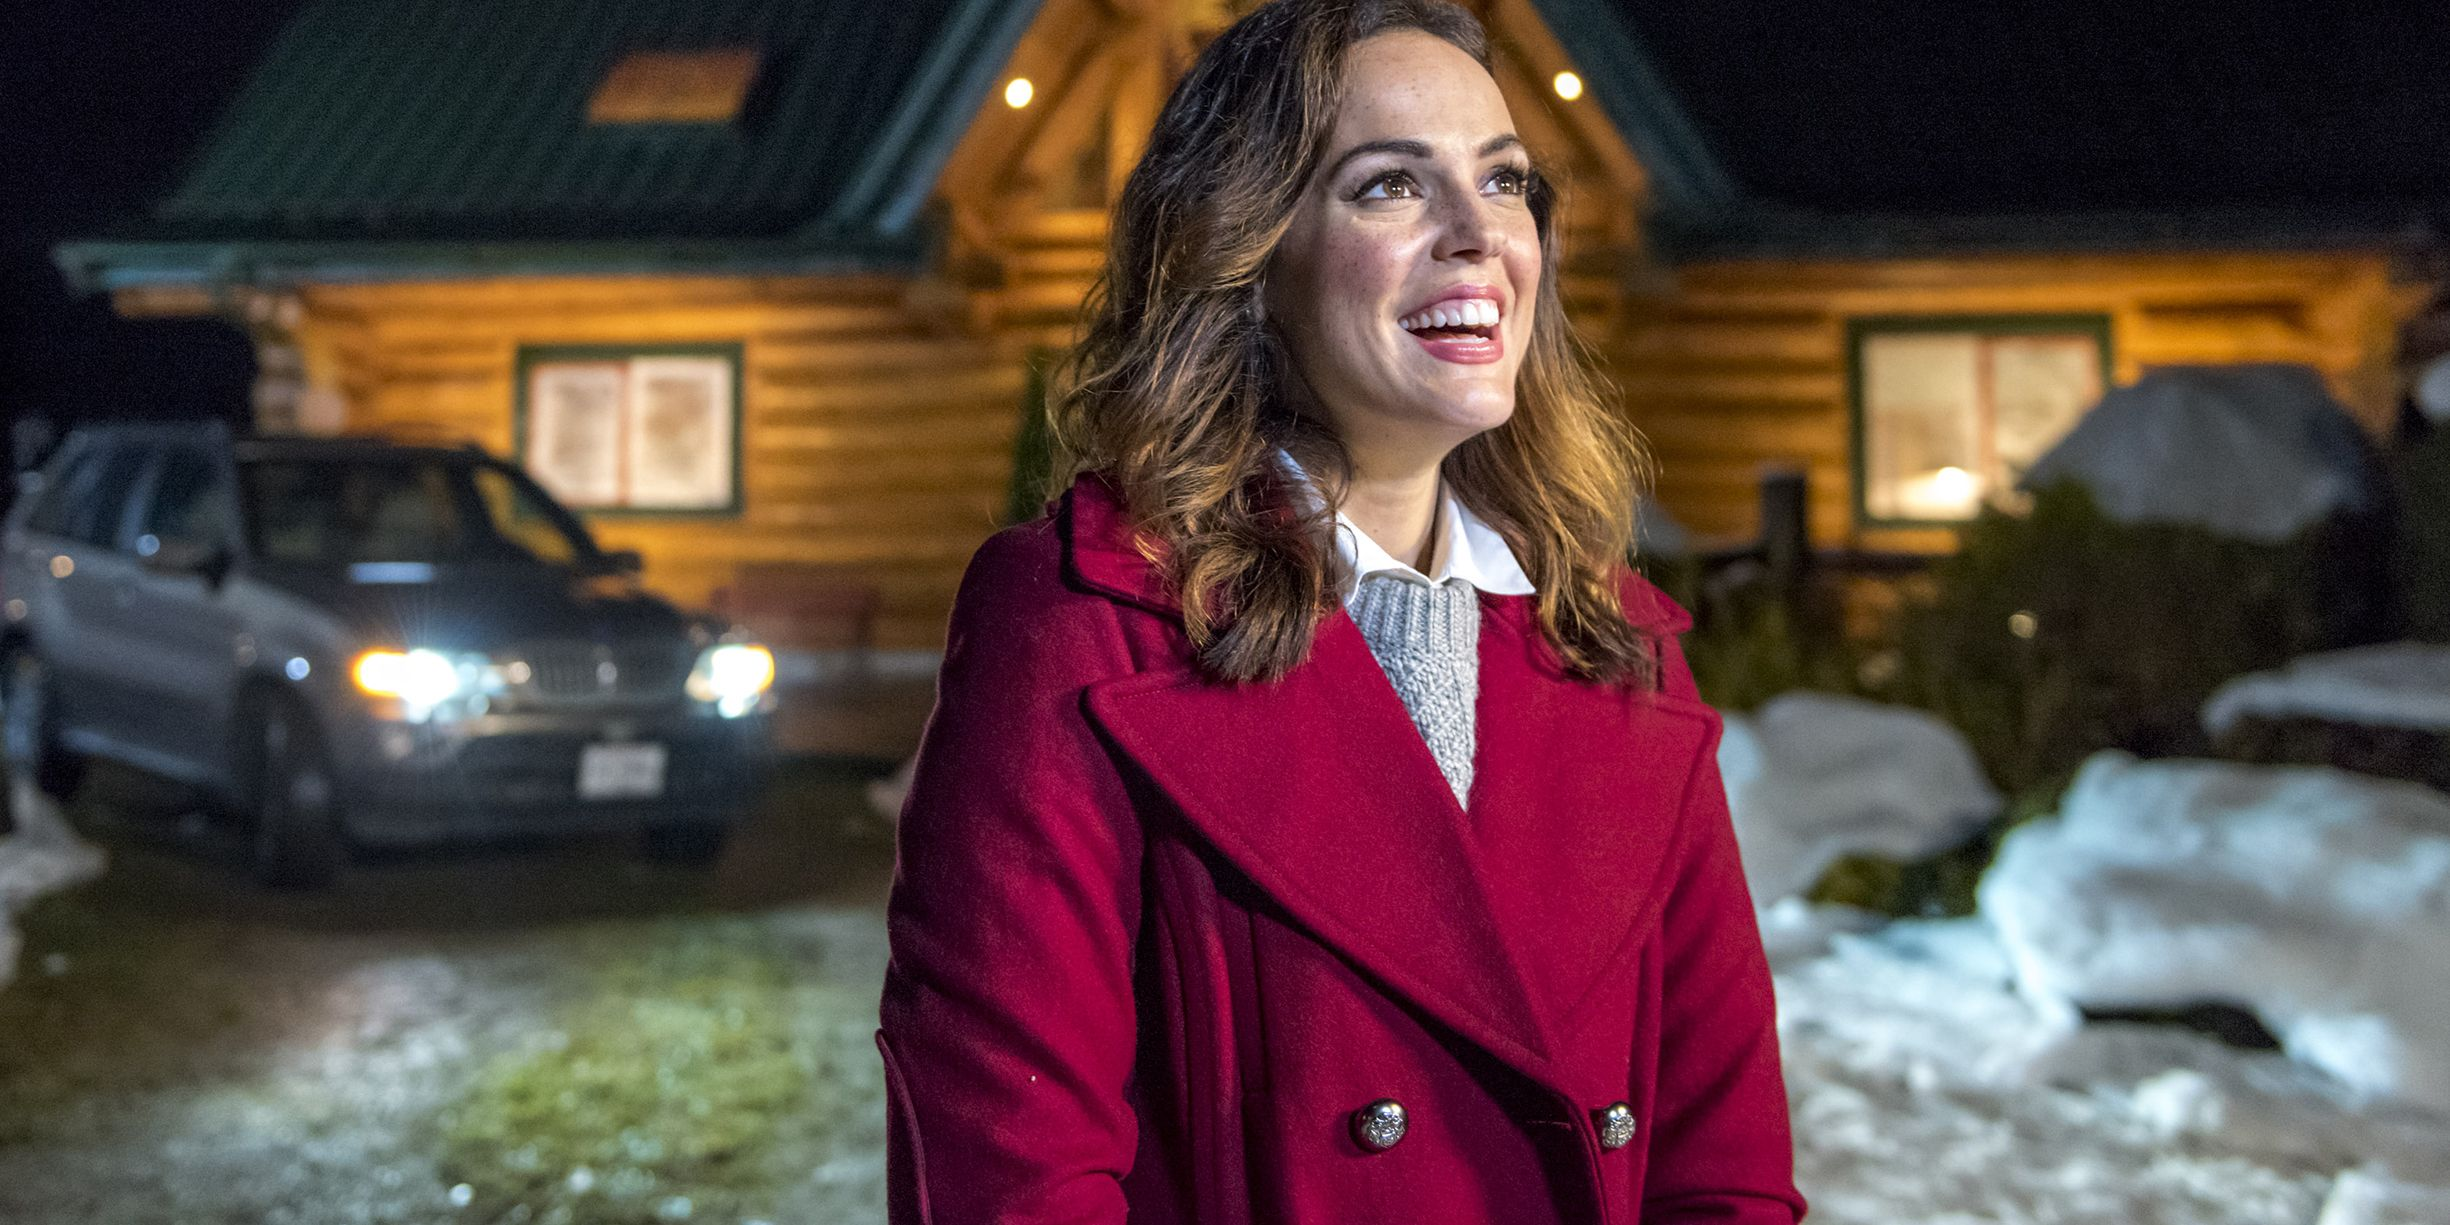 95ab961f4f26 The Hallmark Channel Added Another Movie to Its 'Countdown to Christmas'  Lineup